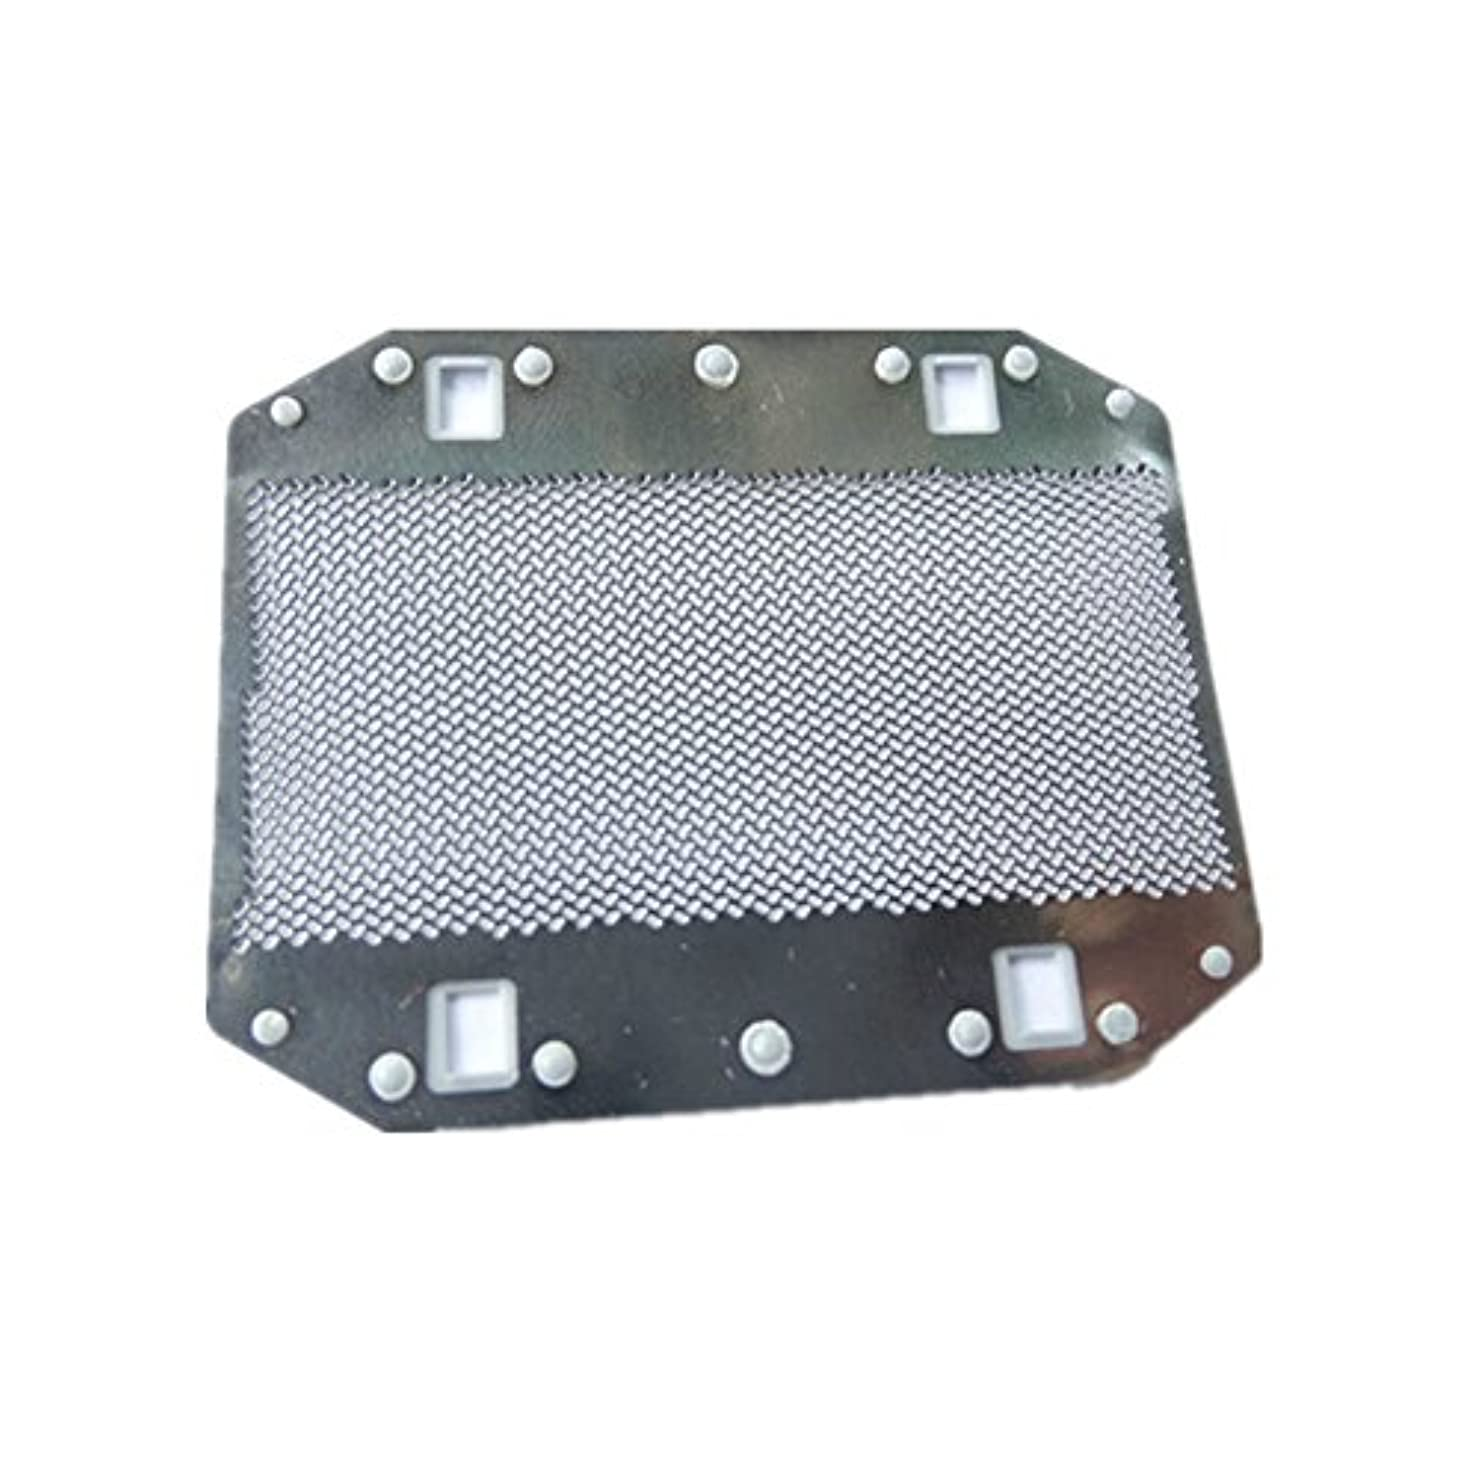 HZjundasi Replacement Outer ホイル for Panasonic ES3750/3760/RP40/815/3050 ES9943